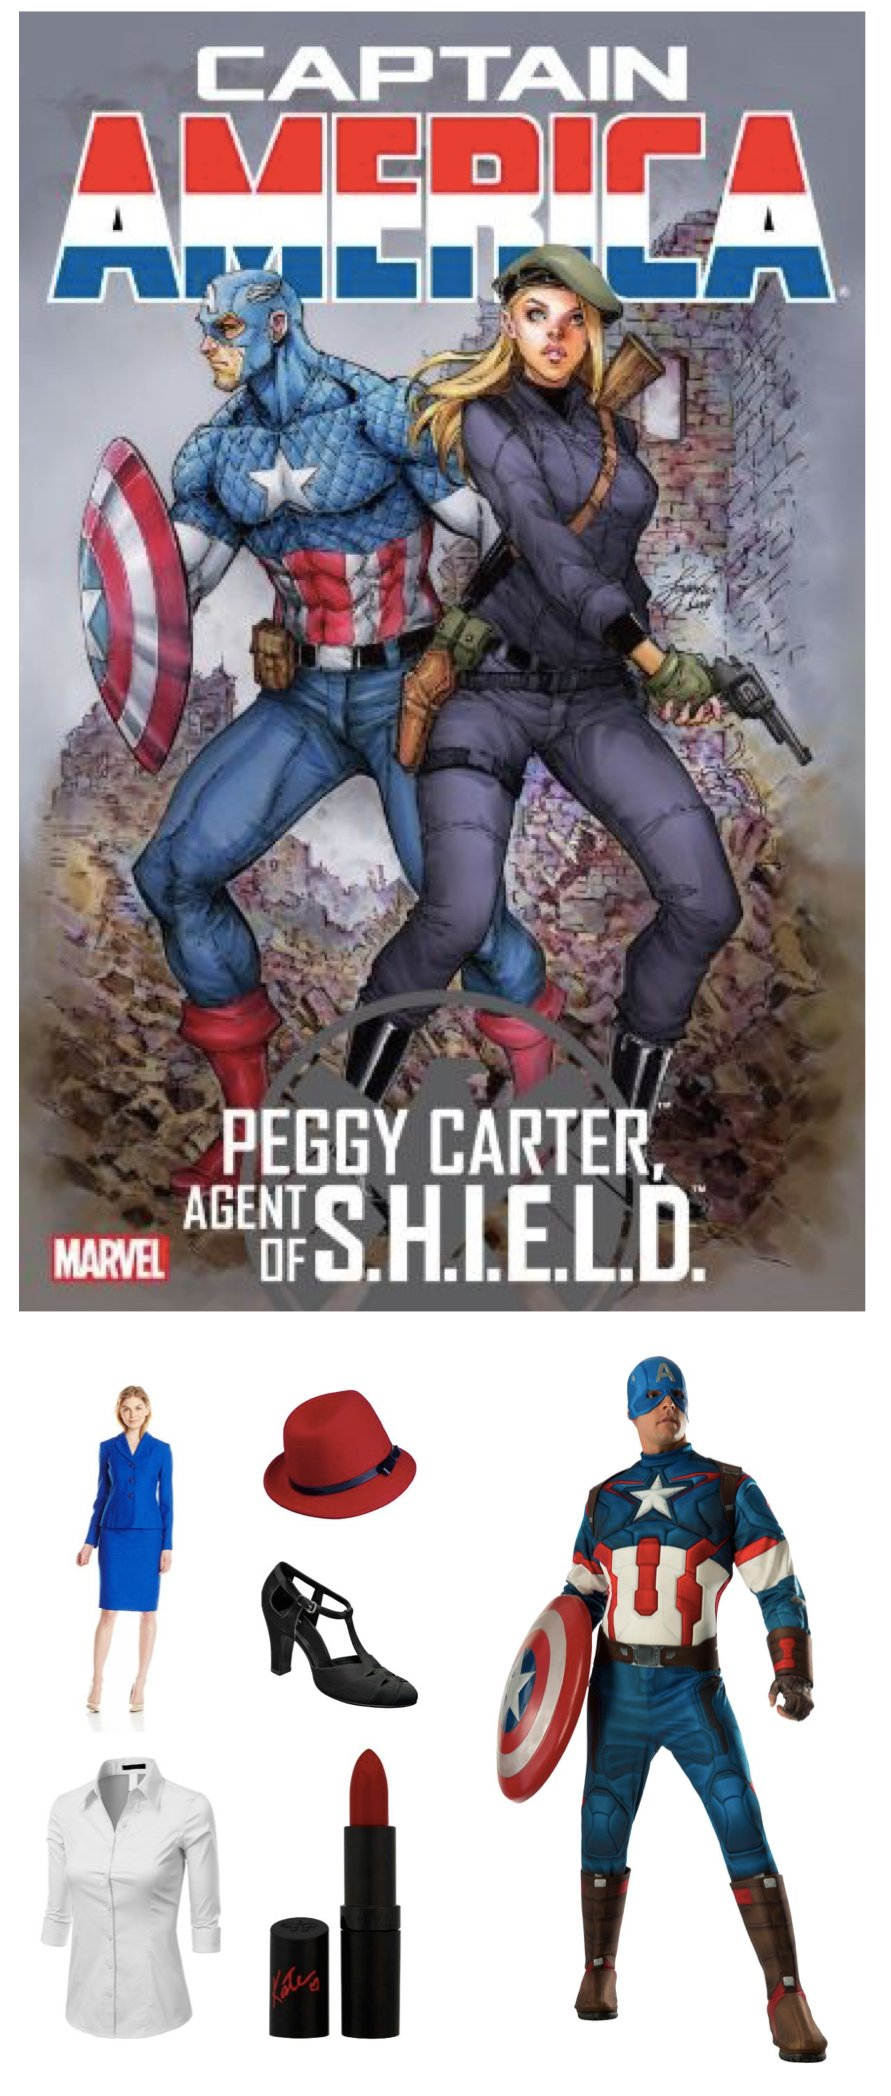 Captain America & Agent Peggy_Carter Couples Costumes